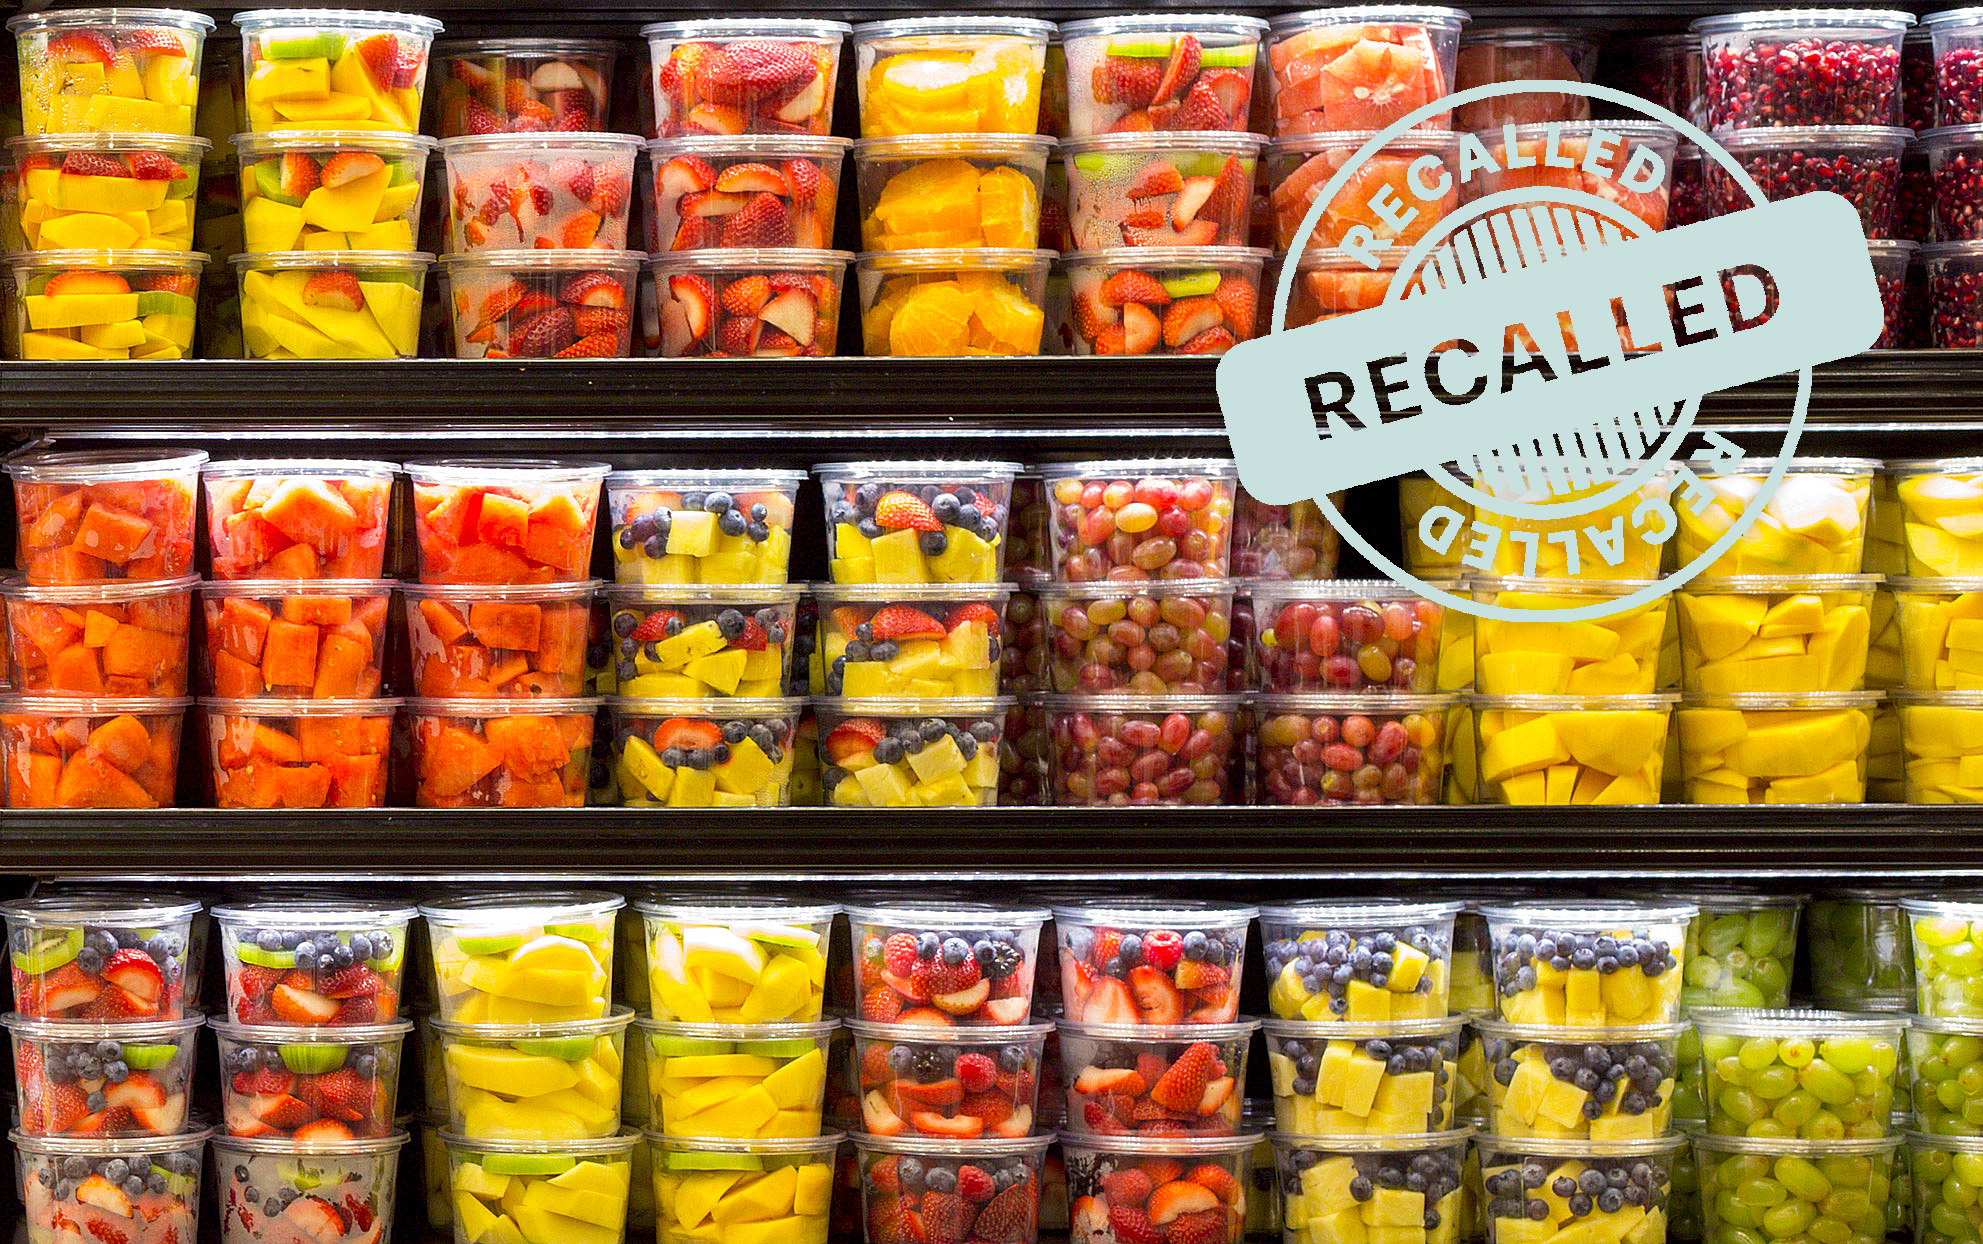 FRUIT RECALL WITH STAMP